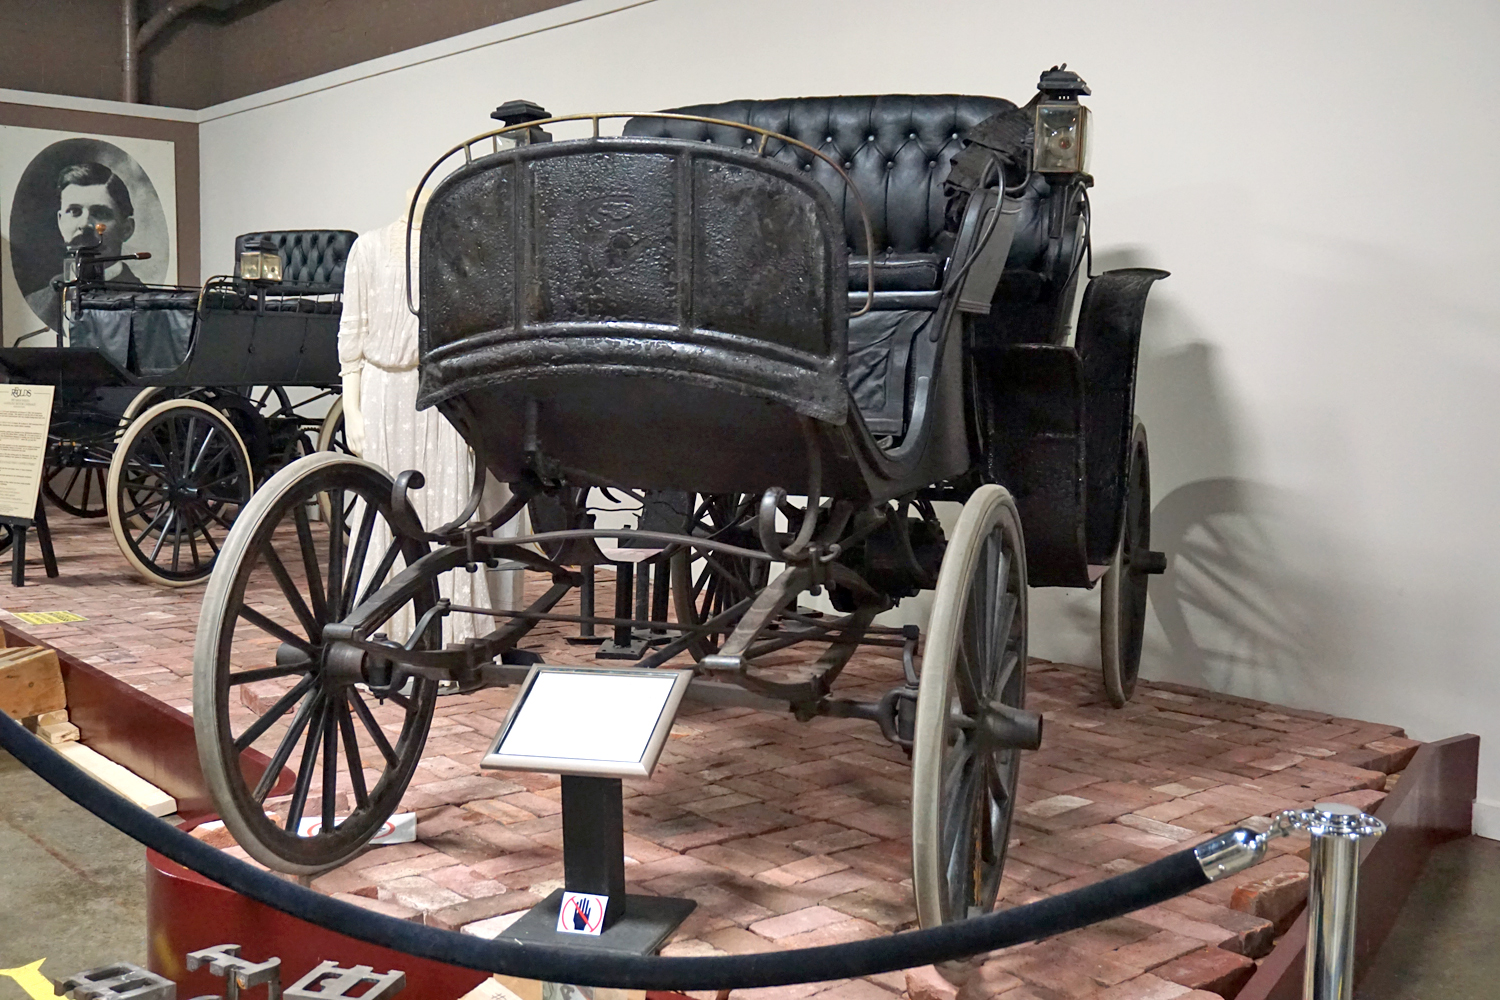 19th-Century Eddy Electric Automobile Motors